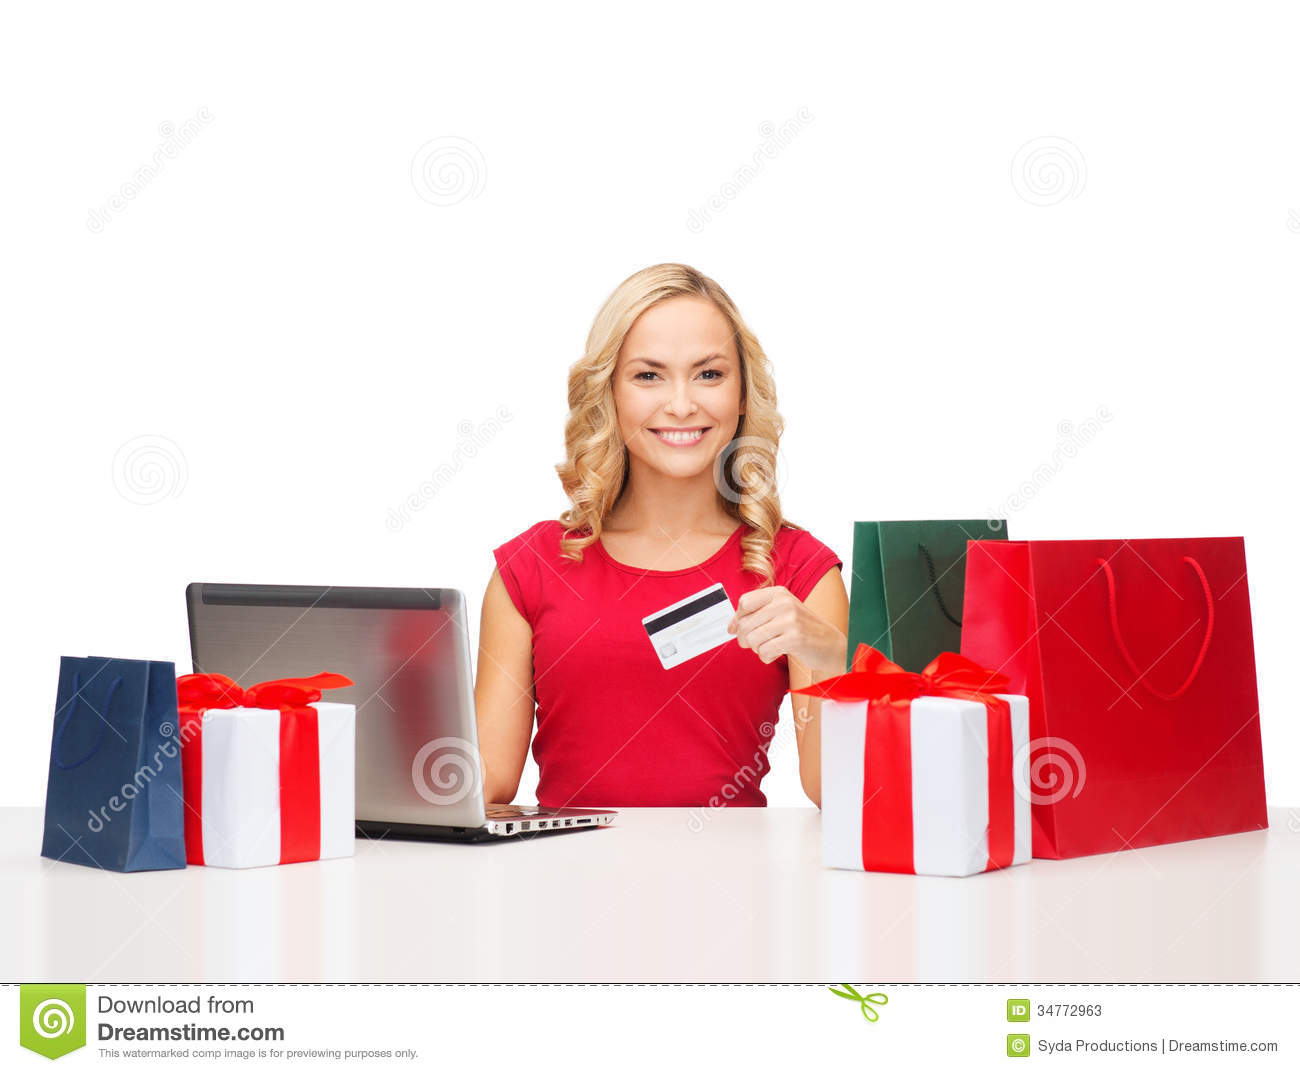 Many online e-gift sites let you see how the gift looks when it's received, so that you can see it as the recipient sees it. Many stores can also help you send an e-gift card from the store the next time you stop by; just walk in an ask the staff for help.